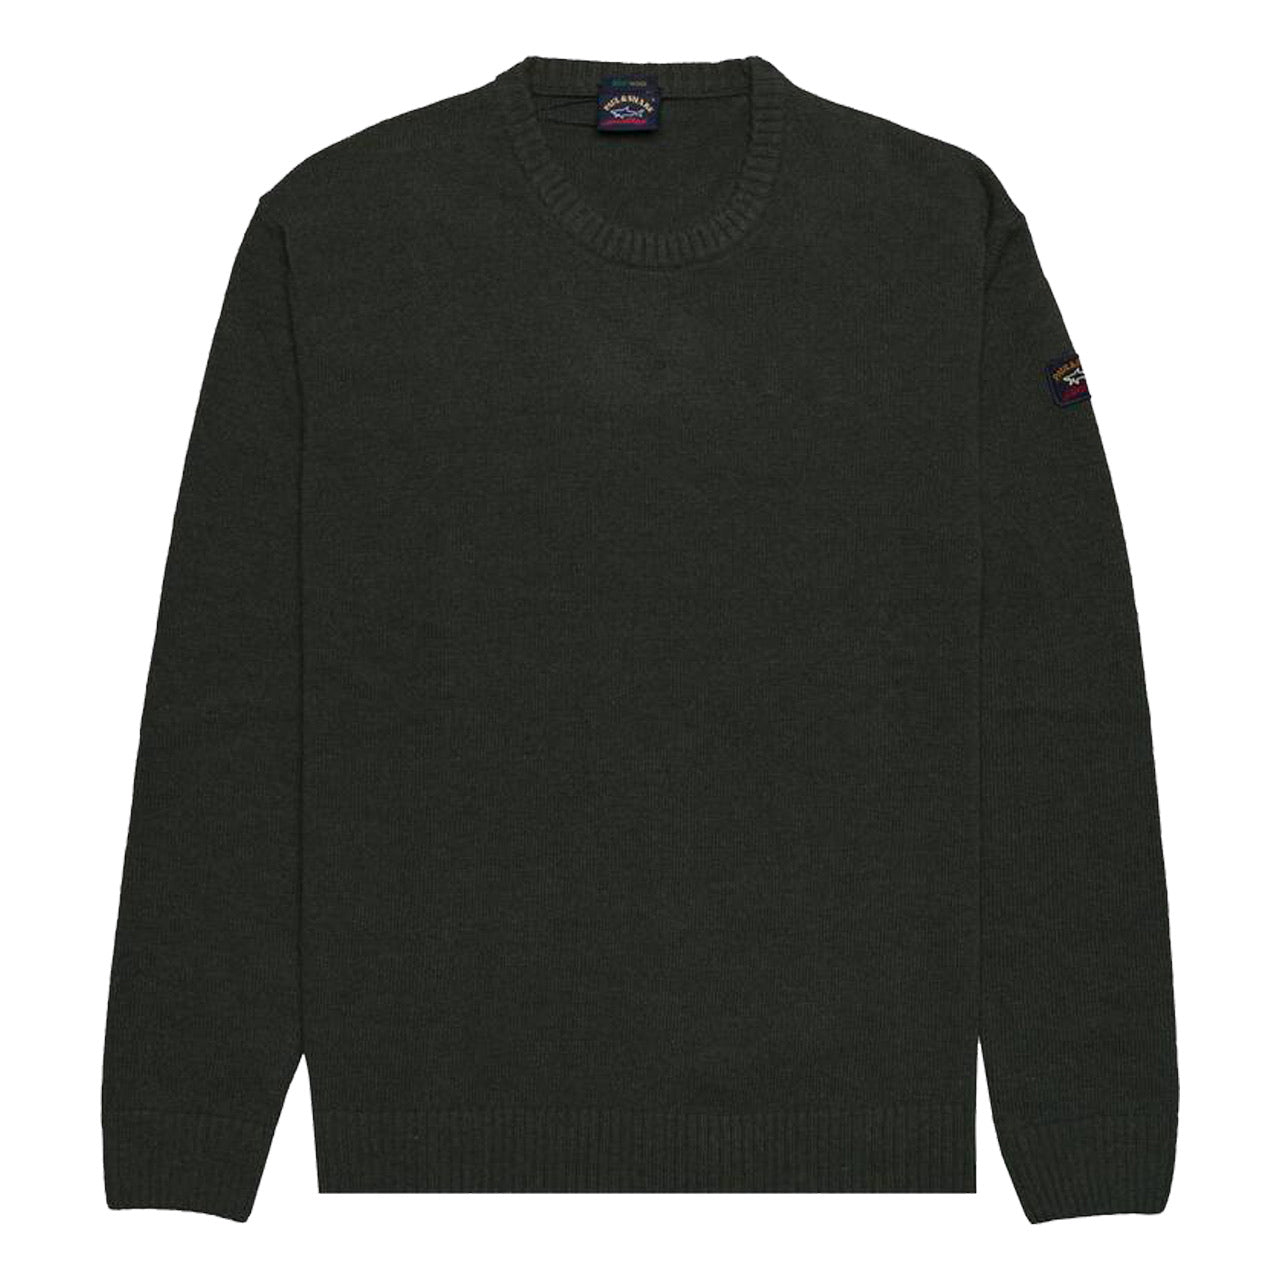 Paul & Shark CLASSIC ROUND NECK Eco Wool SWEATER Dark Green